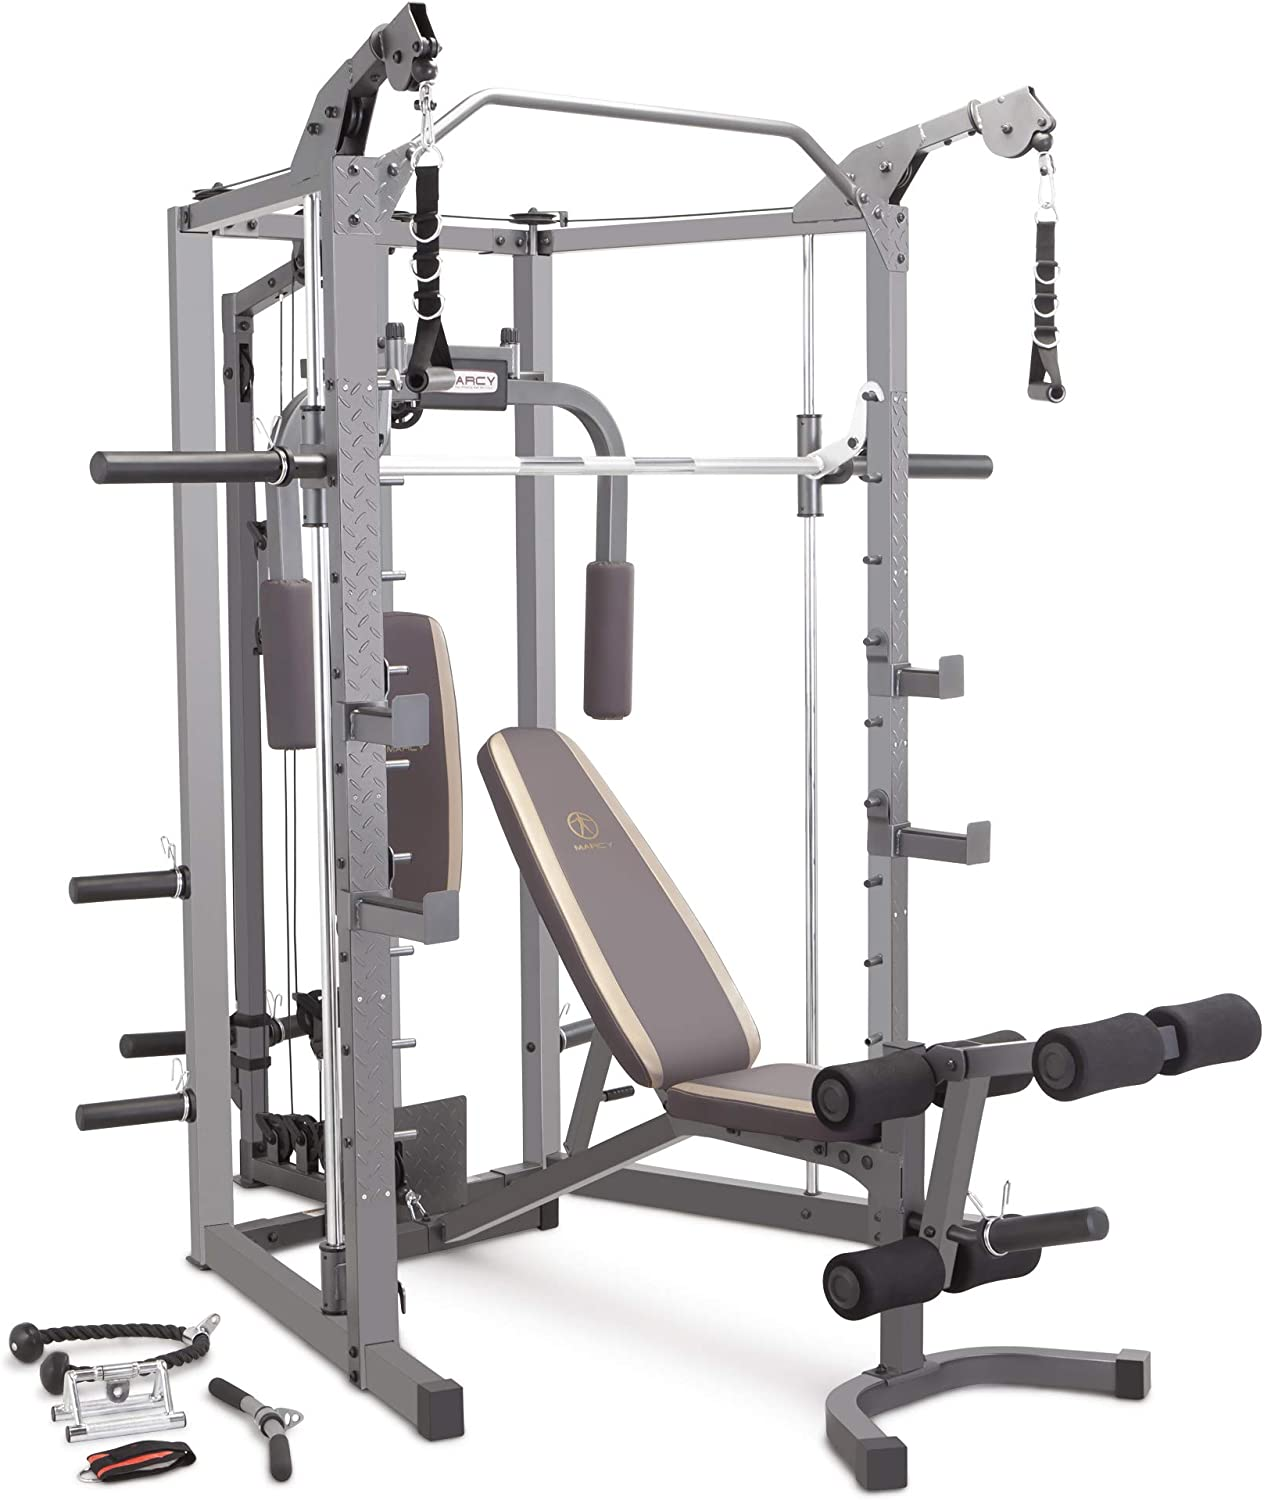 Amazon Com Marcy Smith Cage Machine With Workout Bench And Weight Bar Home Gym Equipment Sm 4008 Sports Outdoors